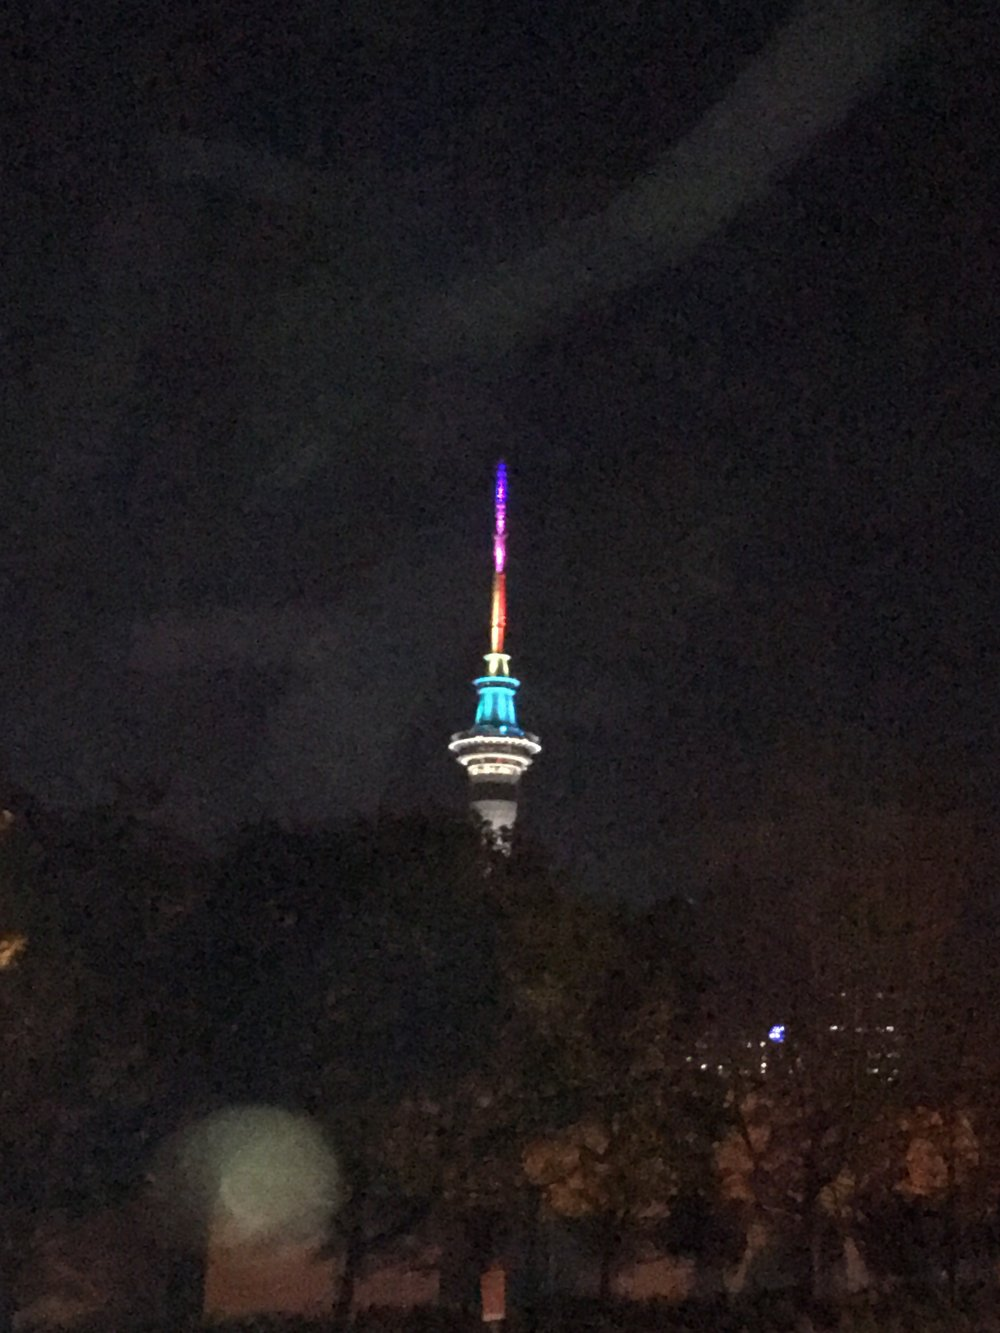 Auckland's tribute to the Pulse victims. This is one of the first things we saw when we landed. Our taxi driver explained to us, as best he knew, what had happened.